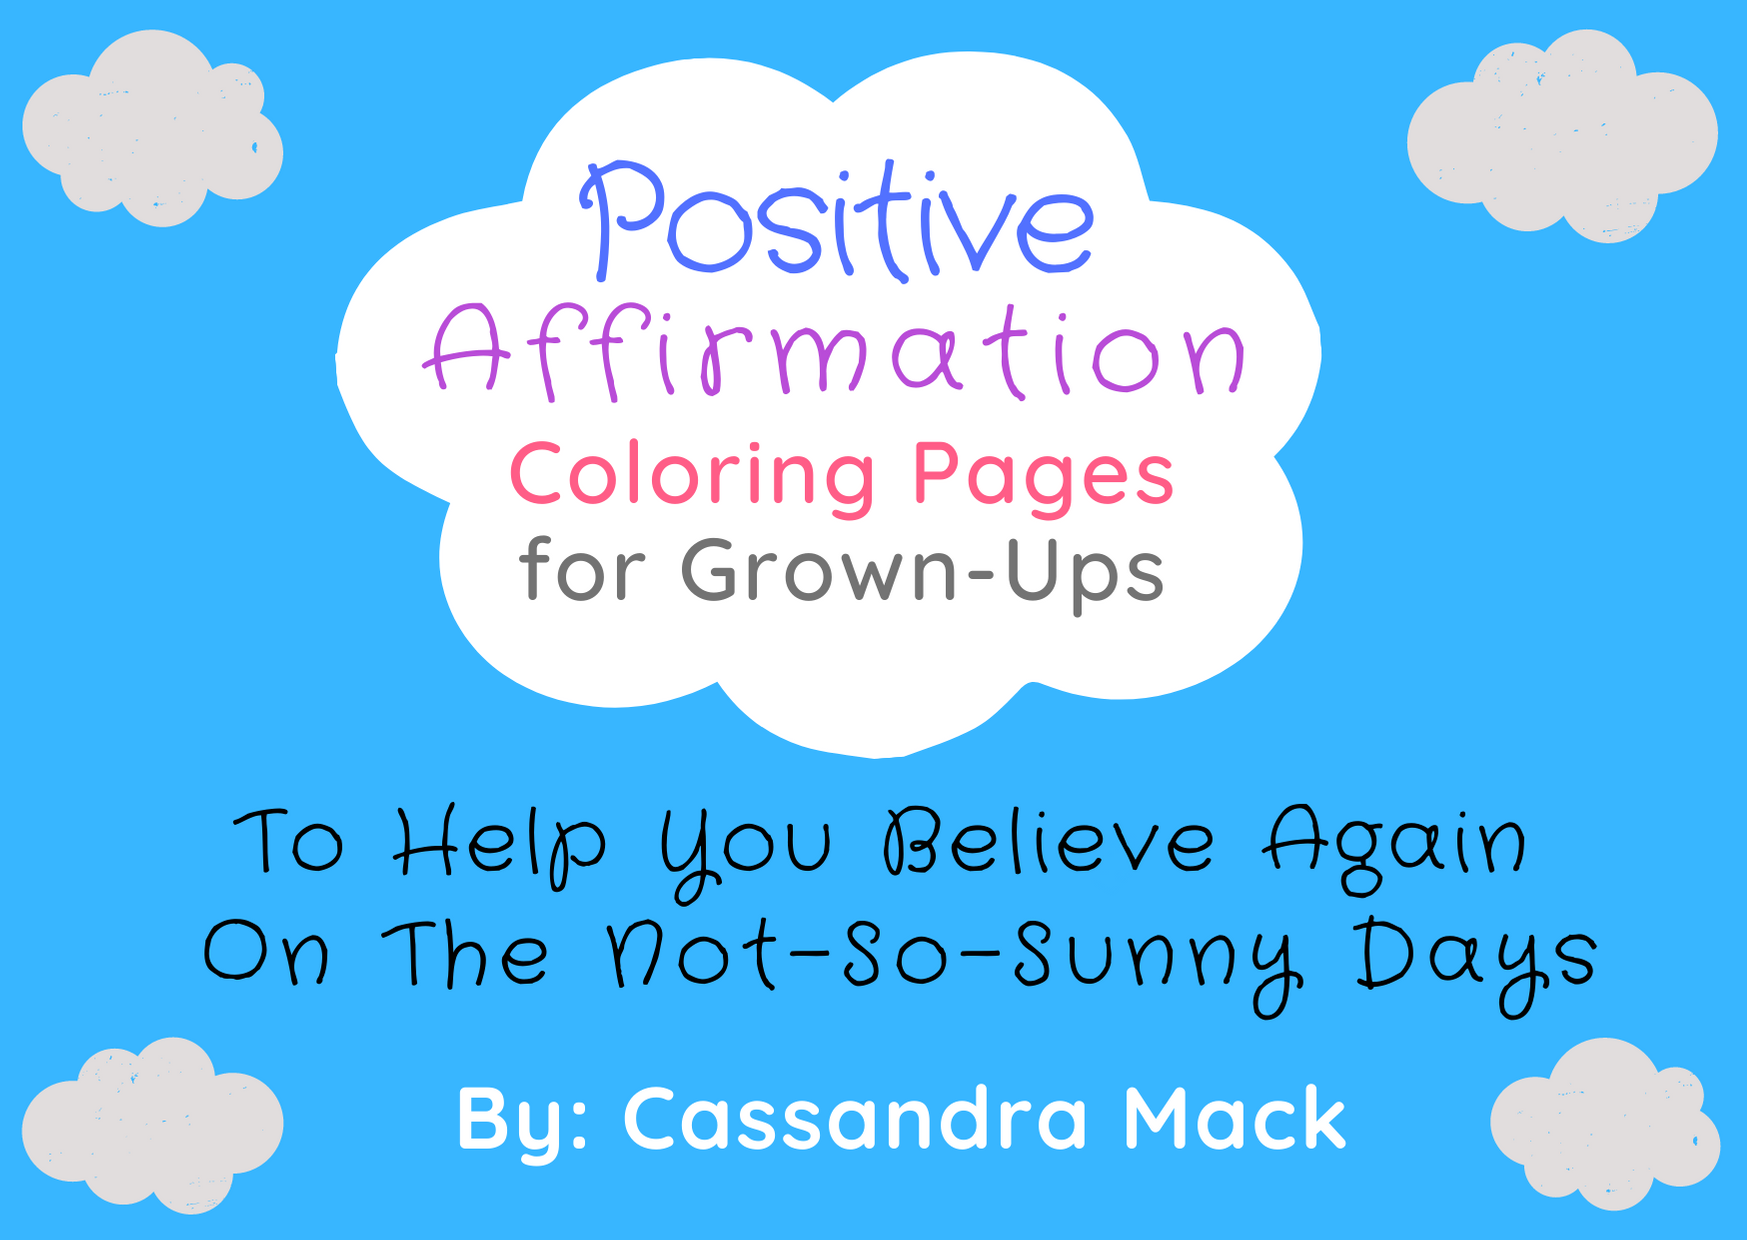 Cassandra Mack Ministries Positive Affirmation Coloring Pages For Grown Ups